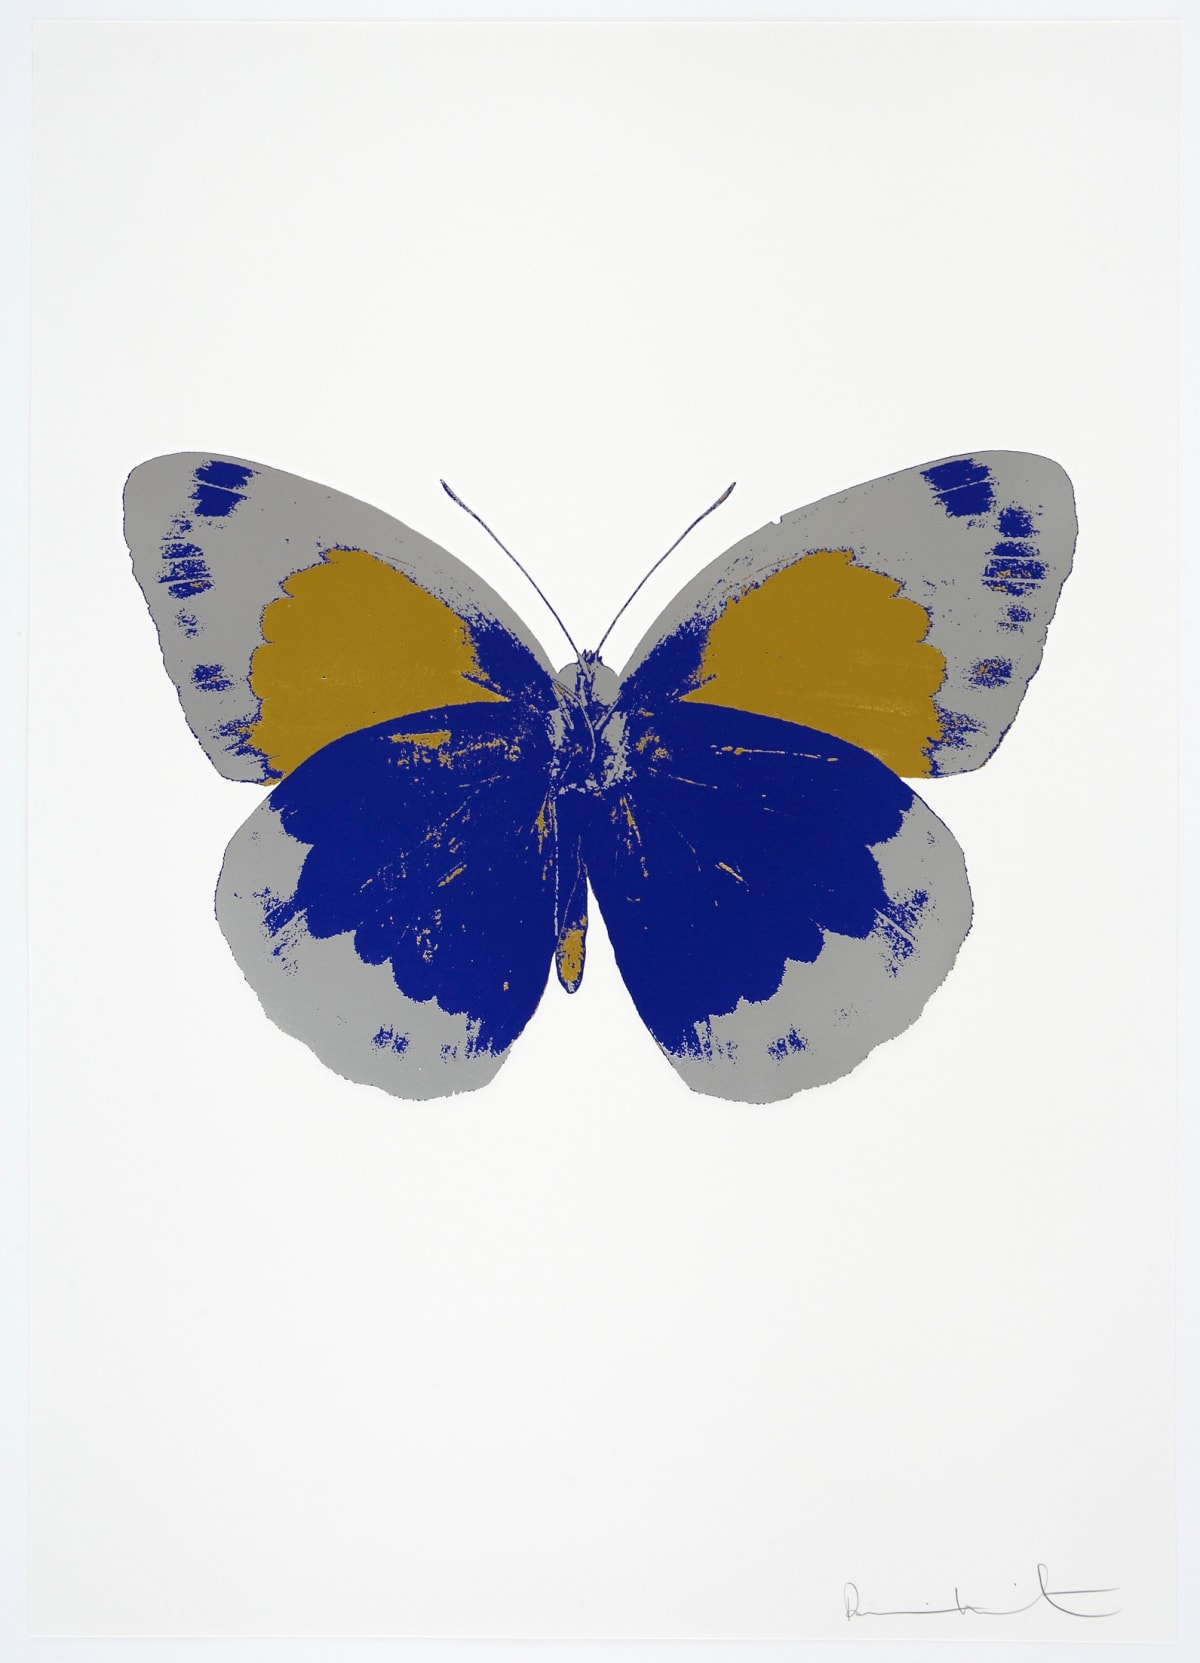 Damien Hirst The Souls II - Westminster Blue/Silver Gloss/Oriental Gold, 2010 3 colour foil block on 300gsm Arches 88 archival paper. Signed and numbered. Published by Paul Stolper and Other Criteria 72 x 51cm OC7862 / 658-45 Edition of 15